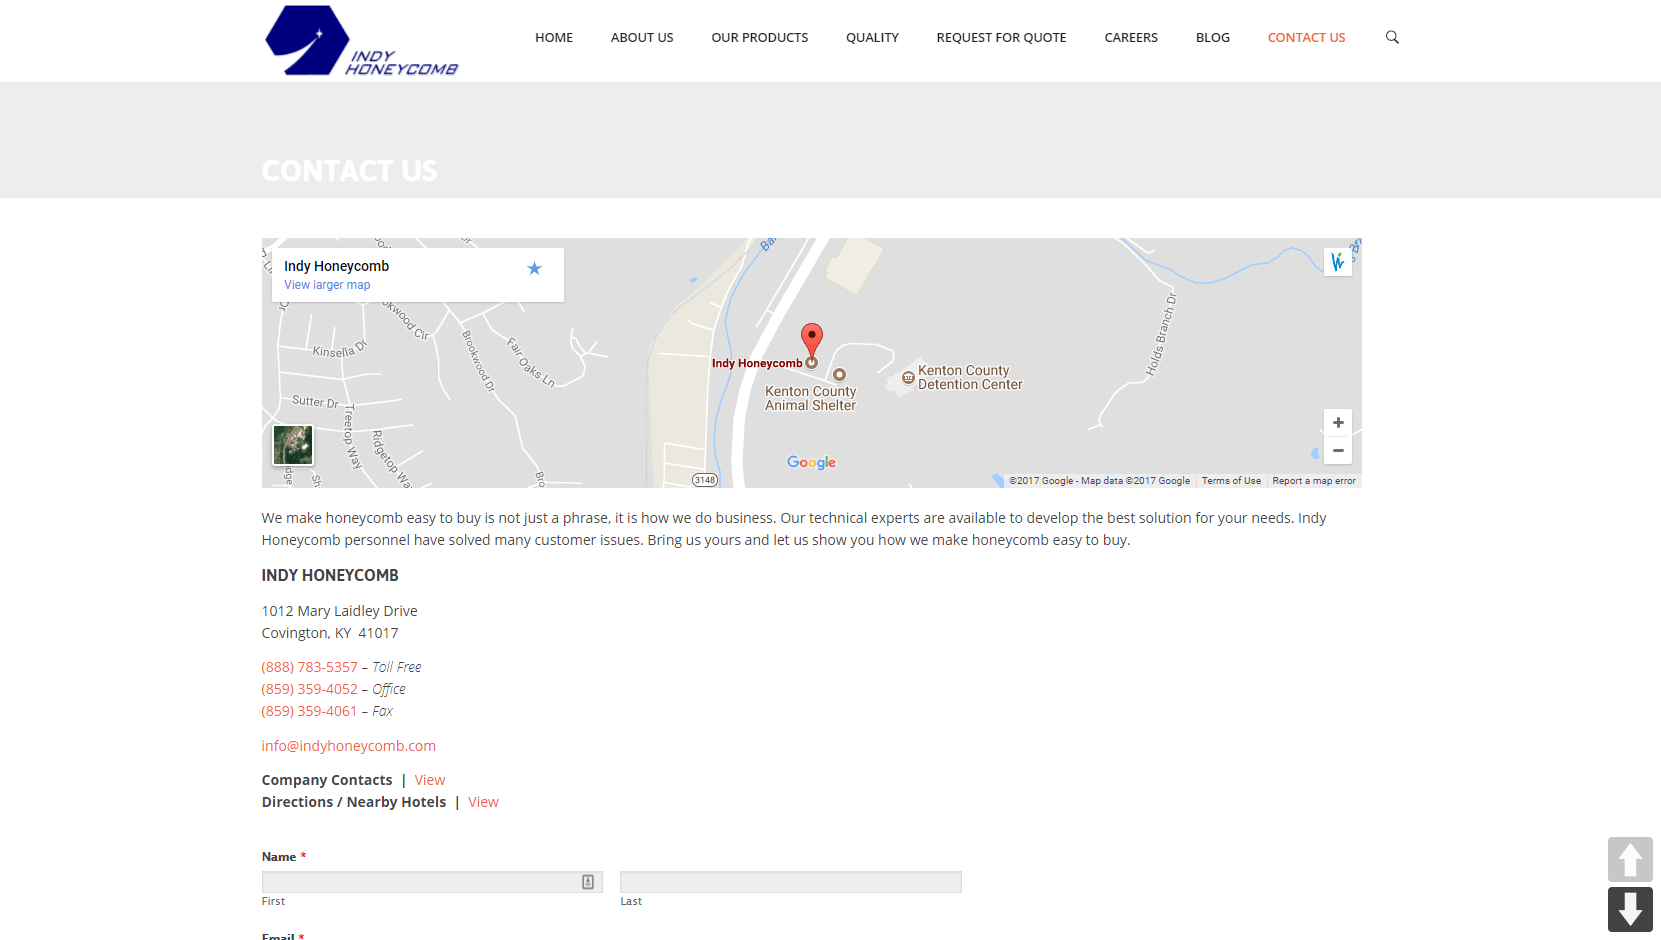 Screenshot of IH's contact page, complete with a map.